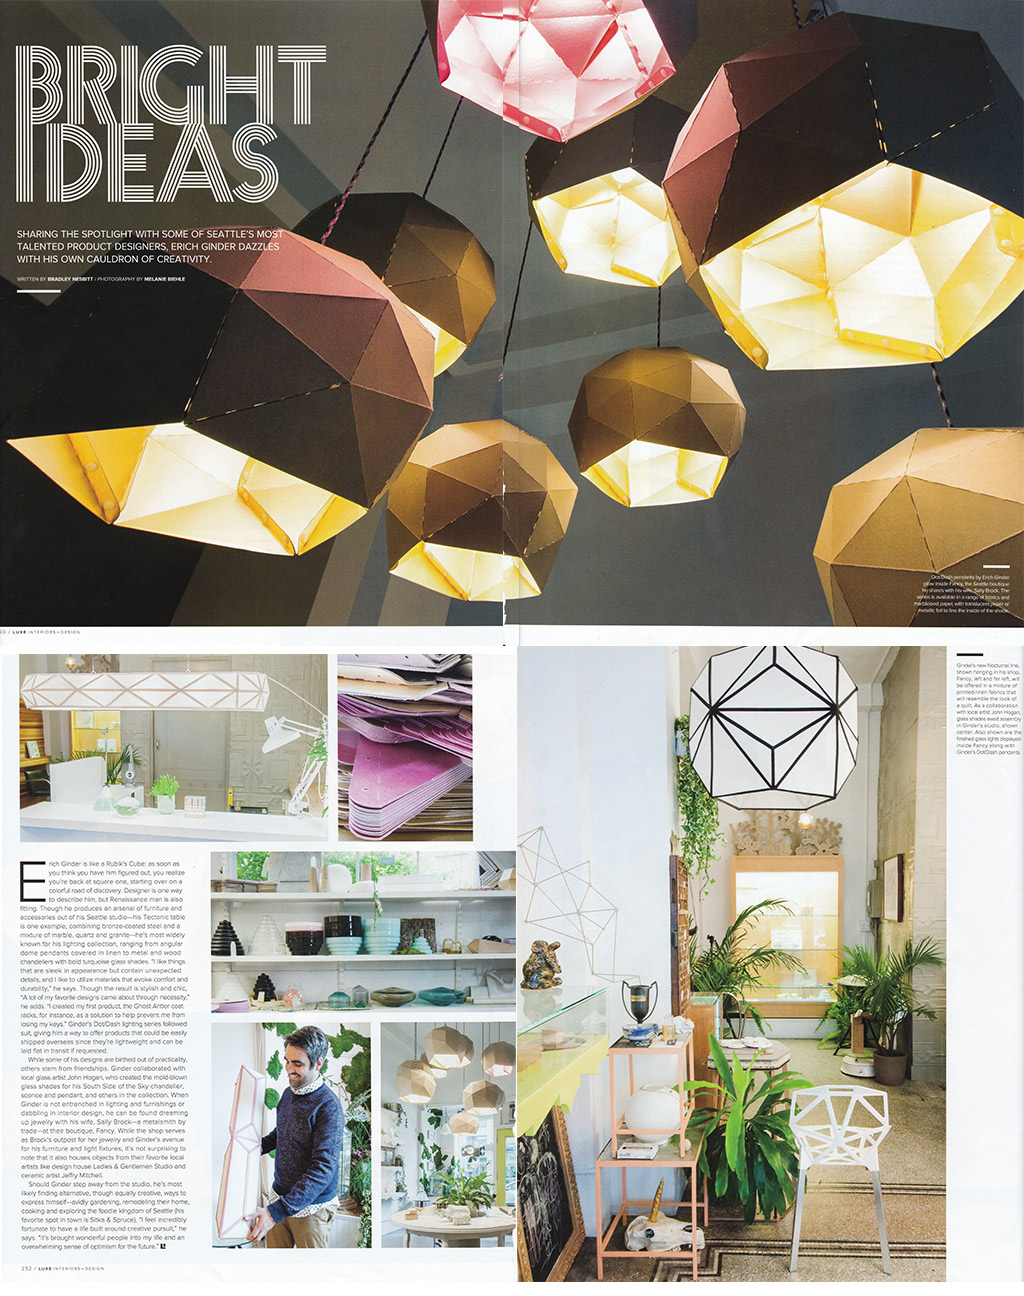 Luxe Interiors + Design Magazine Hired Me To Photograph The Bright Ideas  Story On Seattle Designer Erich Ginder For The Summer 2015 Issue.